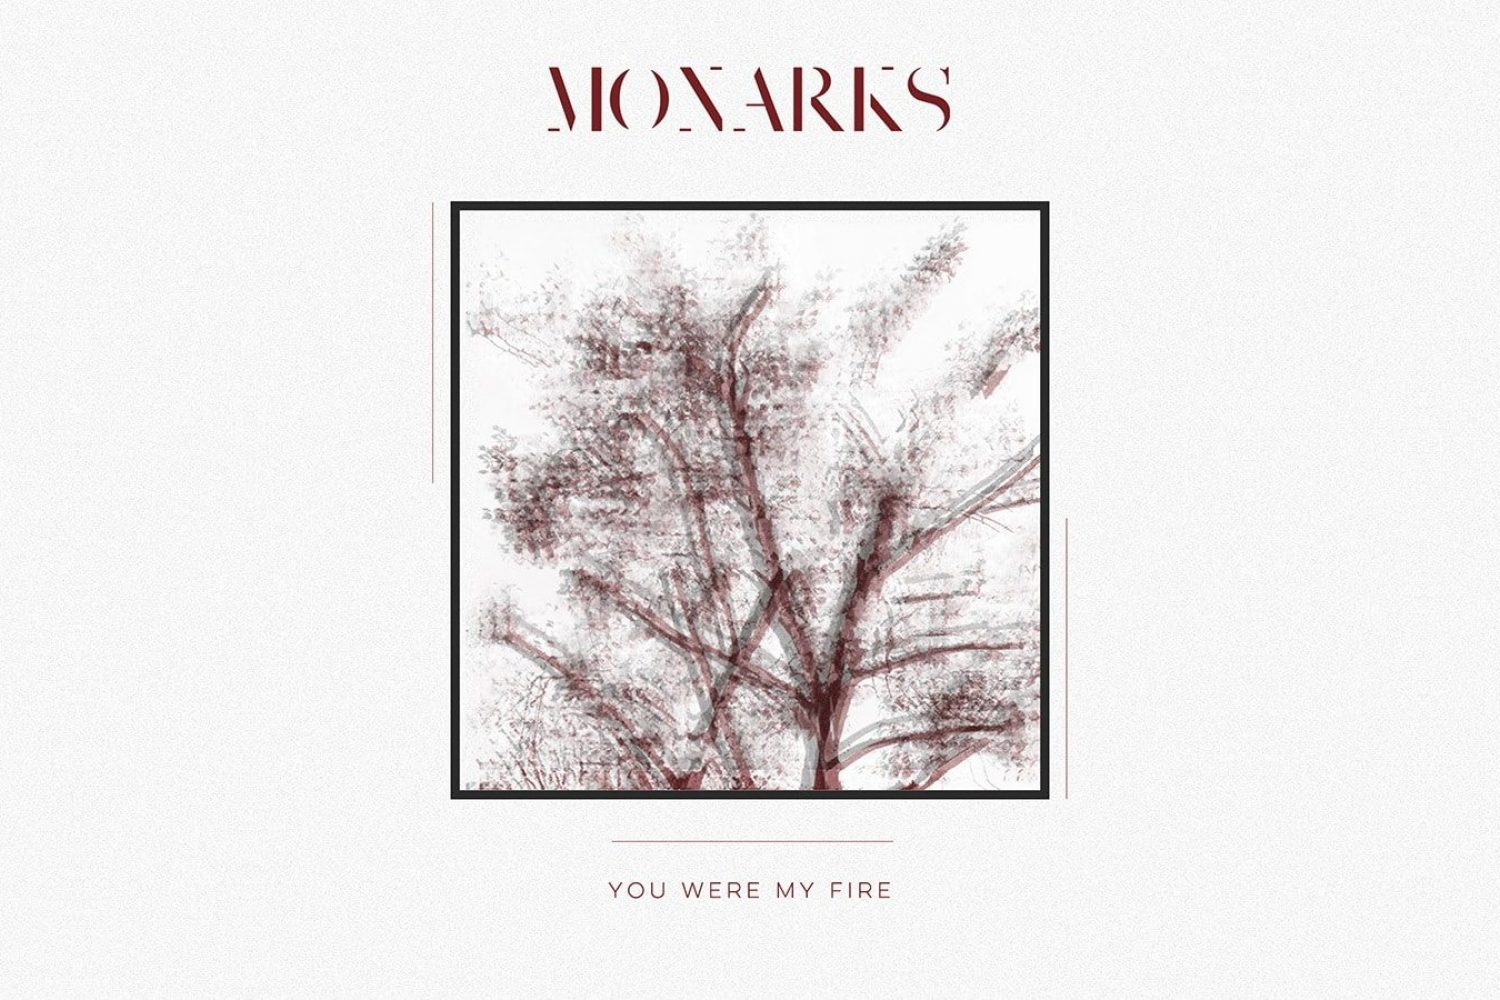 Monarks premiere new video for 'You Were My Fire'